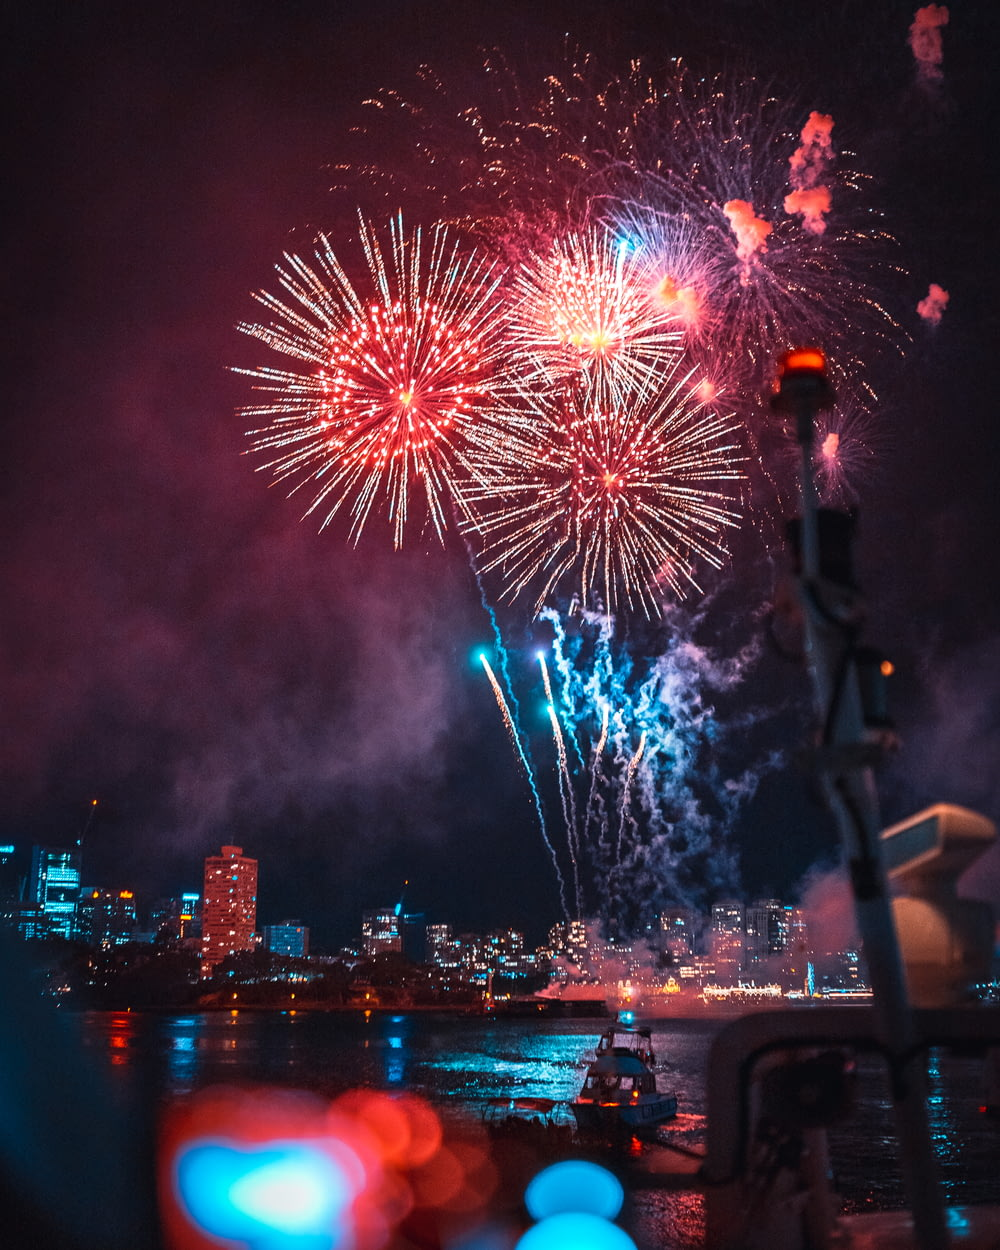 selective focus photography of fireworks display at night